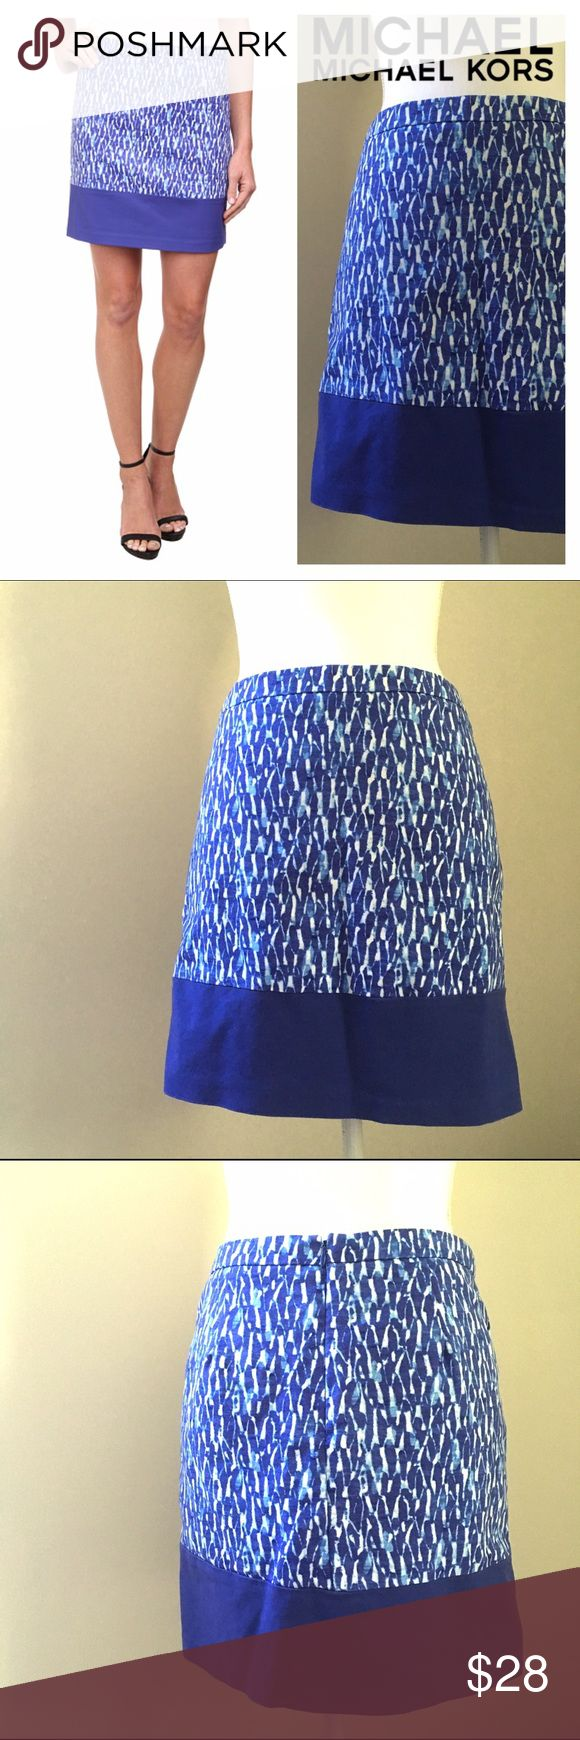 """MICHAEL Michael Kors Print Blocked Mini skirt Blue MICHAEL Michael Kors skirt Print Blocked Mini Royal Blue Lightweight, stretch fabrication with a Mediterranean-inspired print throughout. Fitted waistband. Zip closure at back. Classic A-line silhouette. Straight hemline with color block design. Lined. 98% cotton, 2% elastane; Lining: 97% polyester, 3% spandex.  Machine wash cold, tumble dry low. Measurements: Skirt Length: 16.75""""  Waist Measurement:14.5"""" flat MICHAEL Michael Kors Skirts…"""